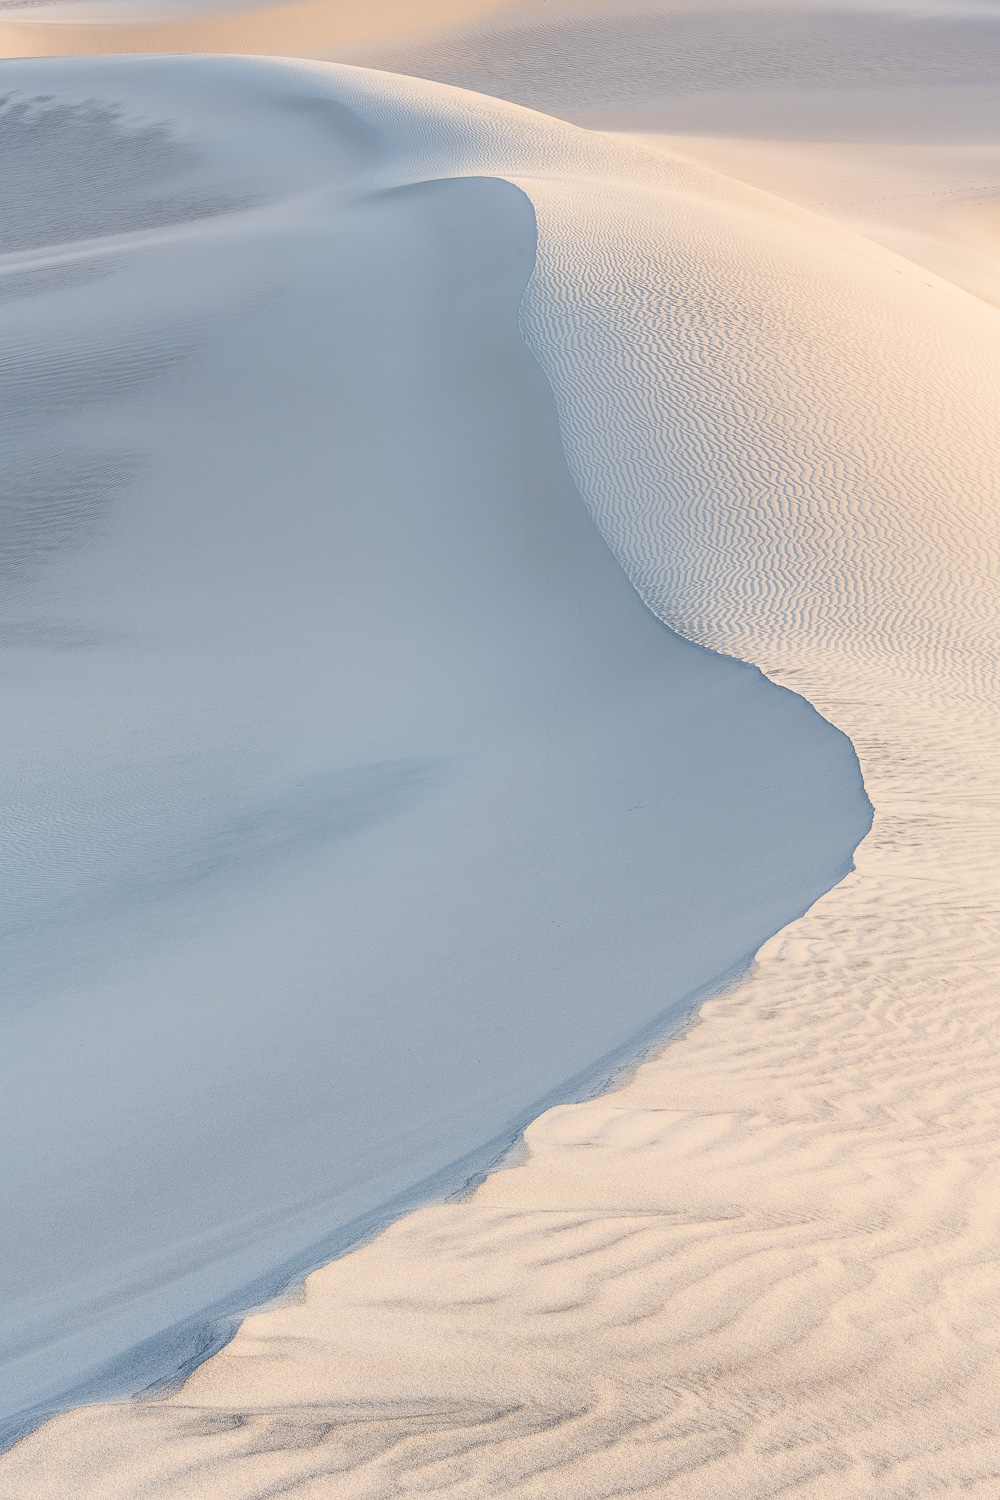 MAB-20190409-CA-DEATH-VALLEY-MESQUITE-DUNES-SUNRISE-71665.jpg